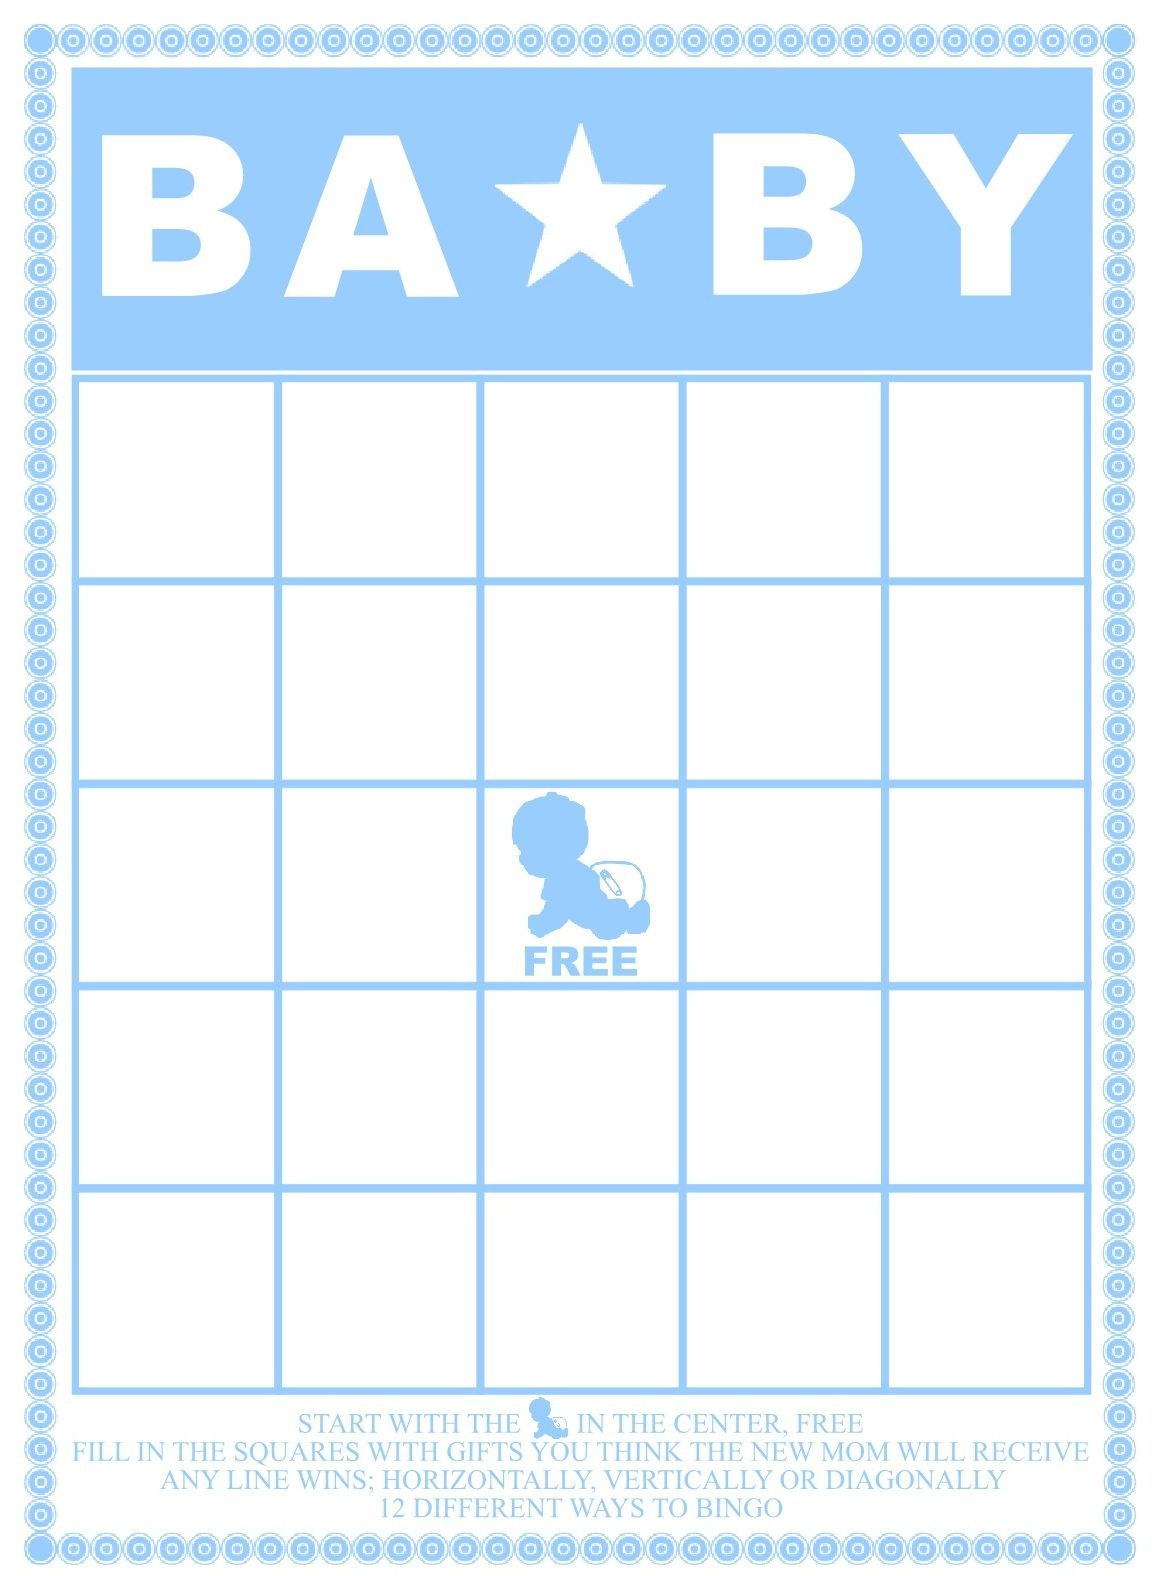 Baby Shower Bingo Card Template - Home Design Ideas - Home Design Ideas - Baby Bingo Free Printable Template